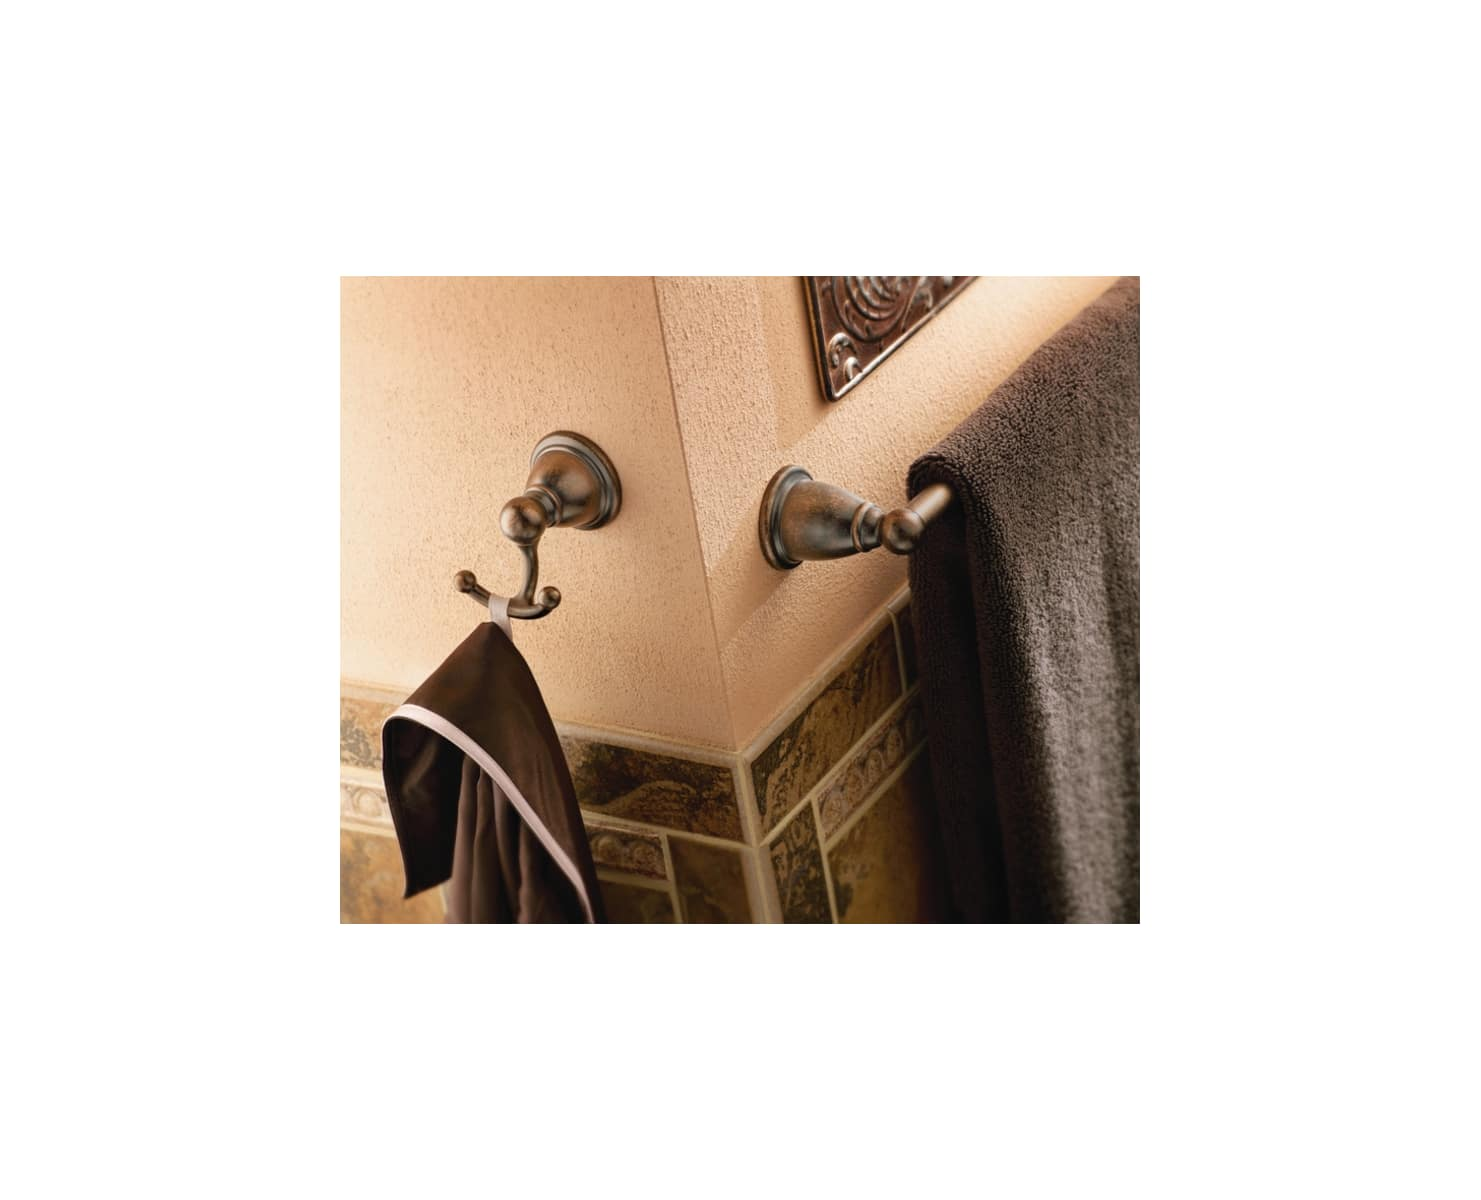 Brushed Nickel Moen CSIYB2203BN Robe Hook from the Brantford Collection